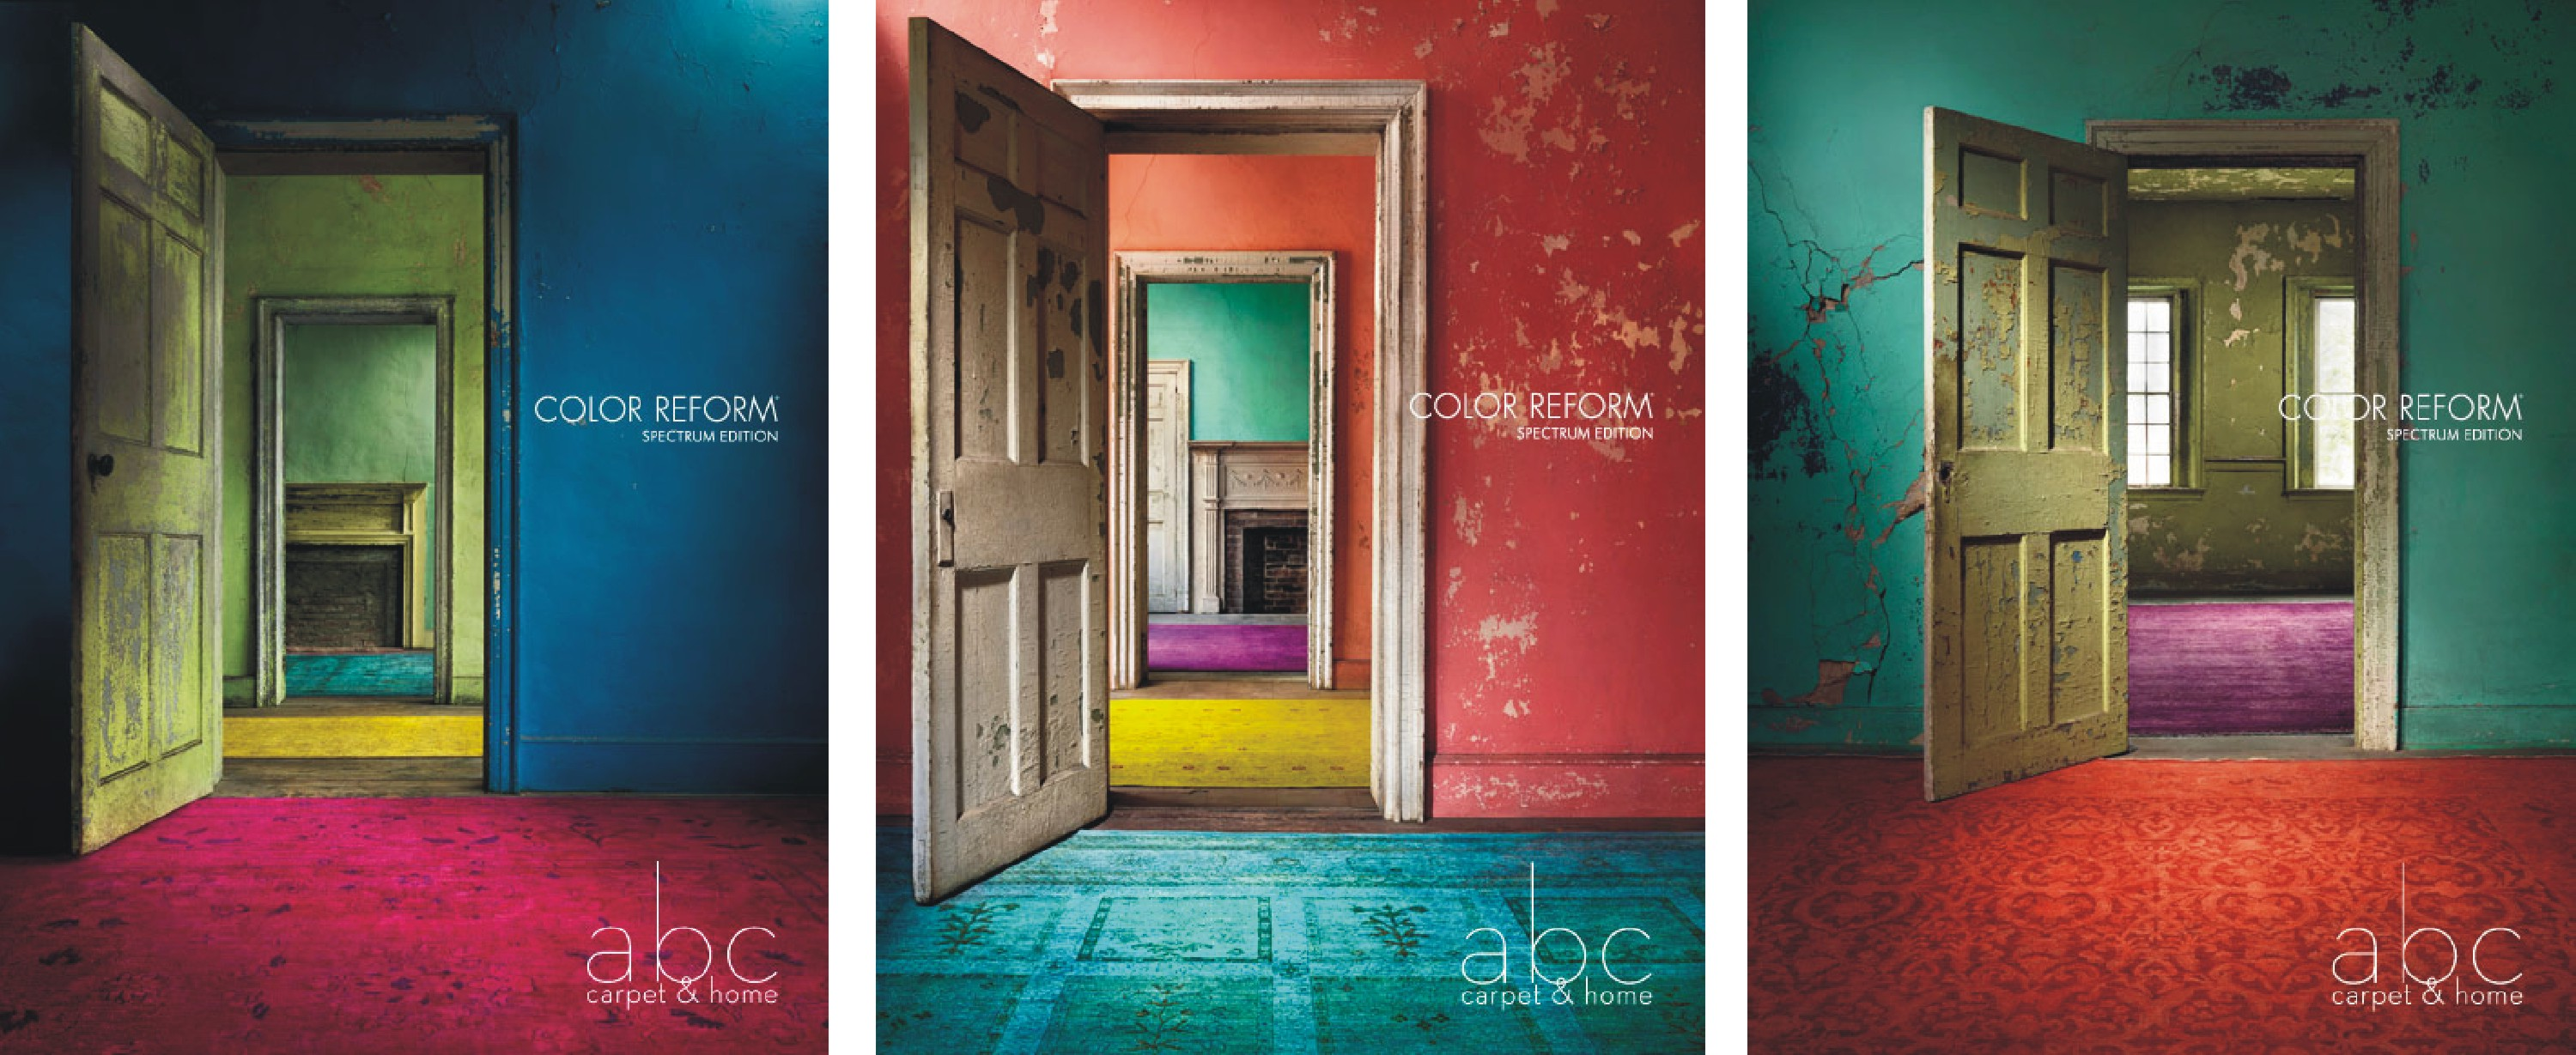 Textiles Abc Carpet And Home Color Reform Spectrum